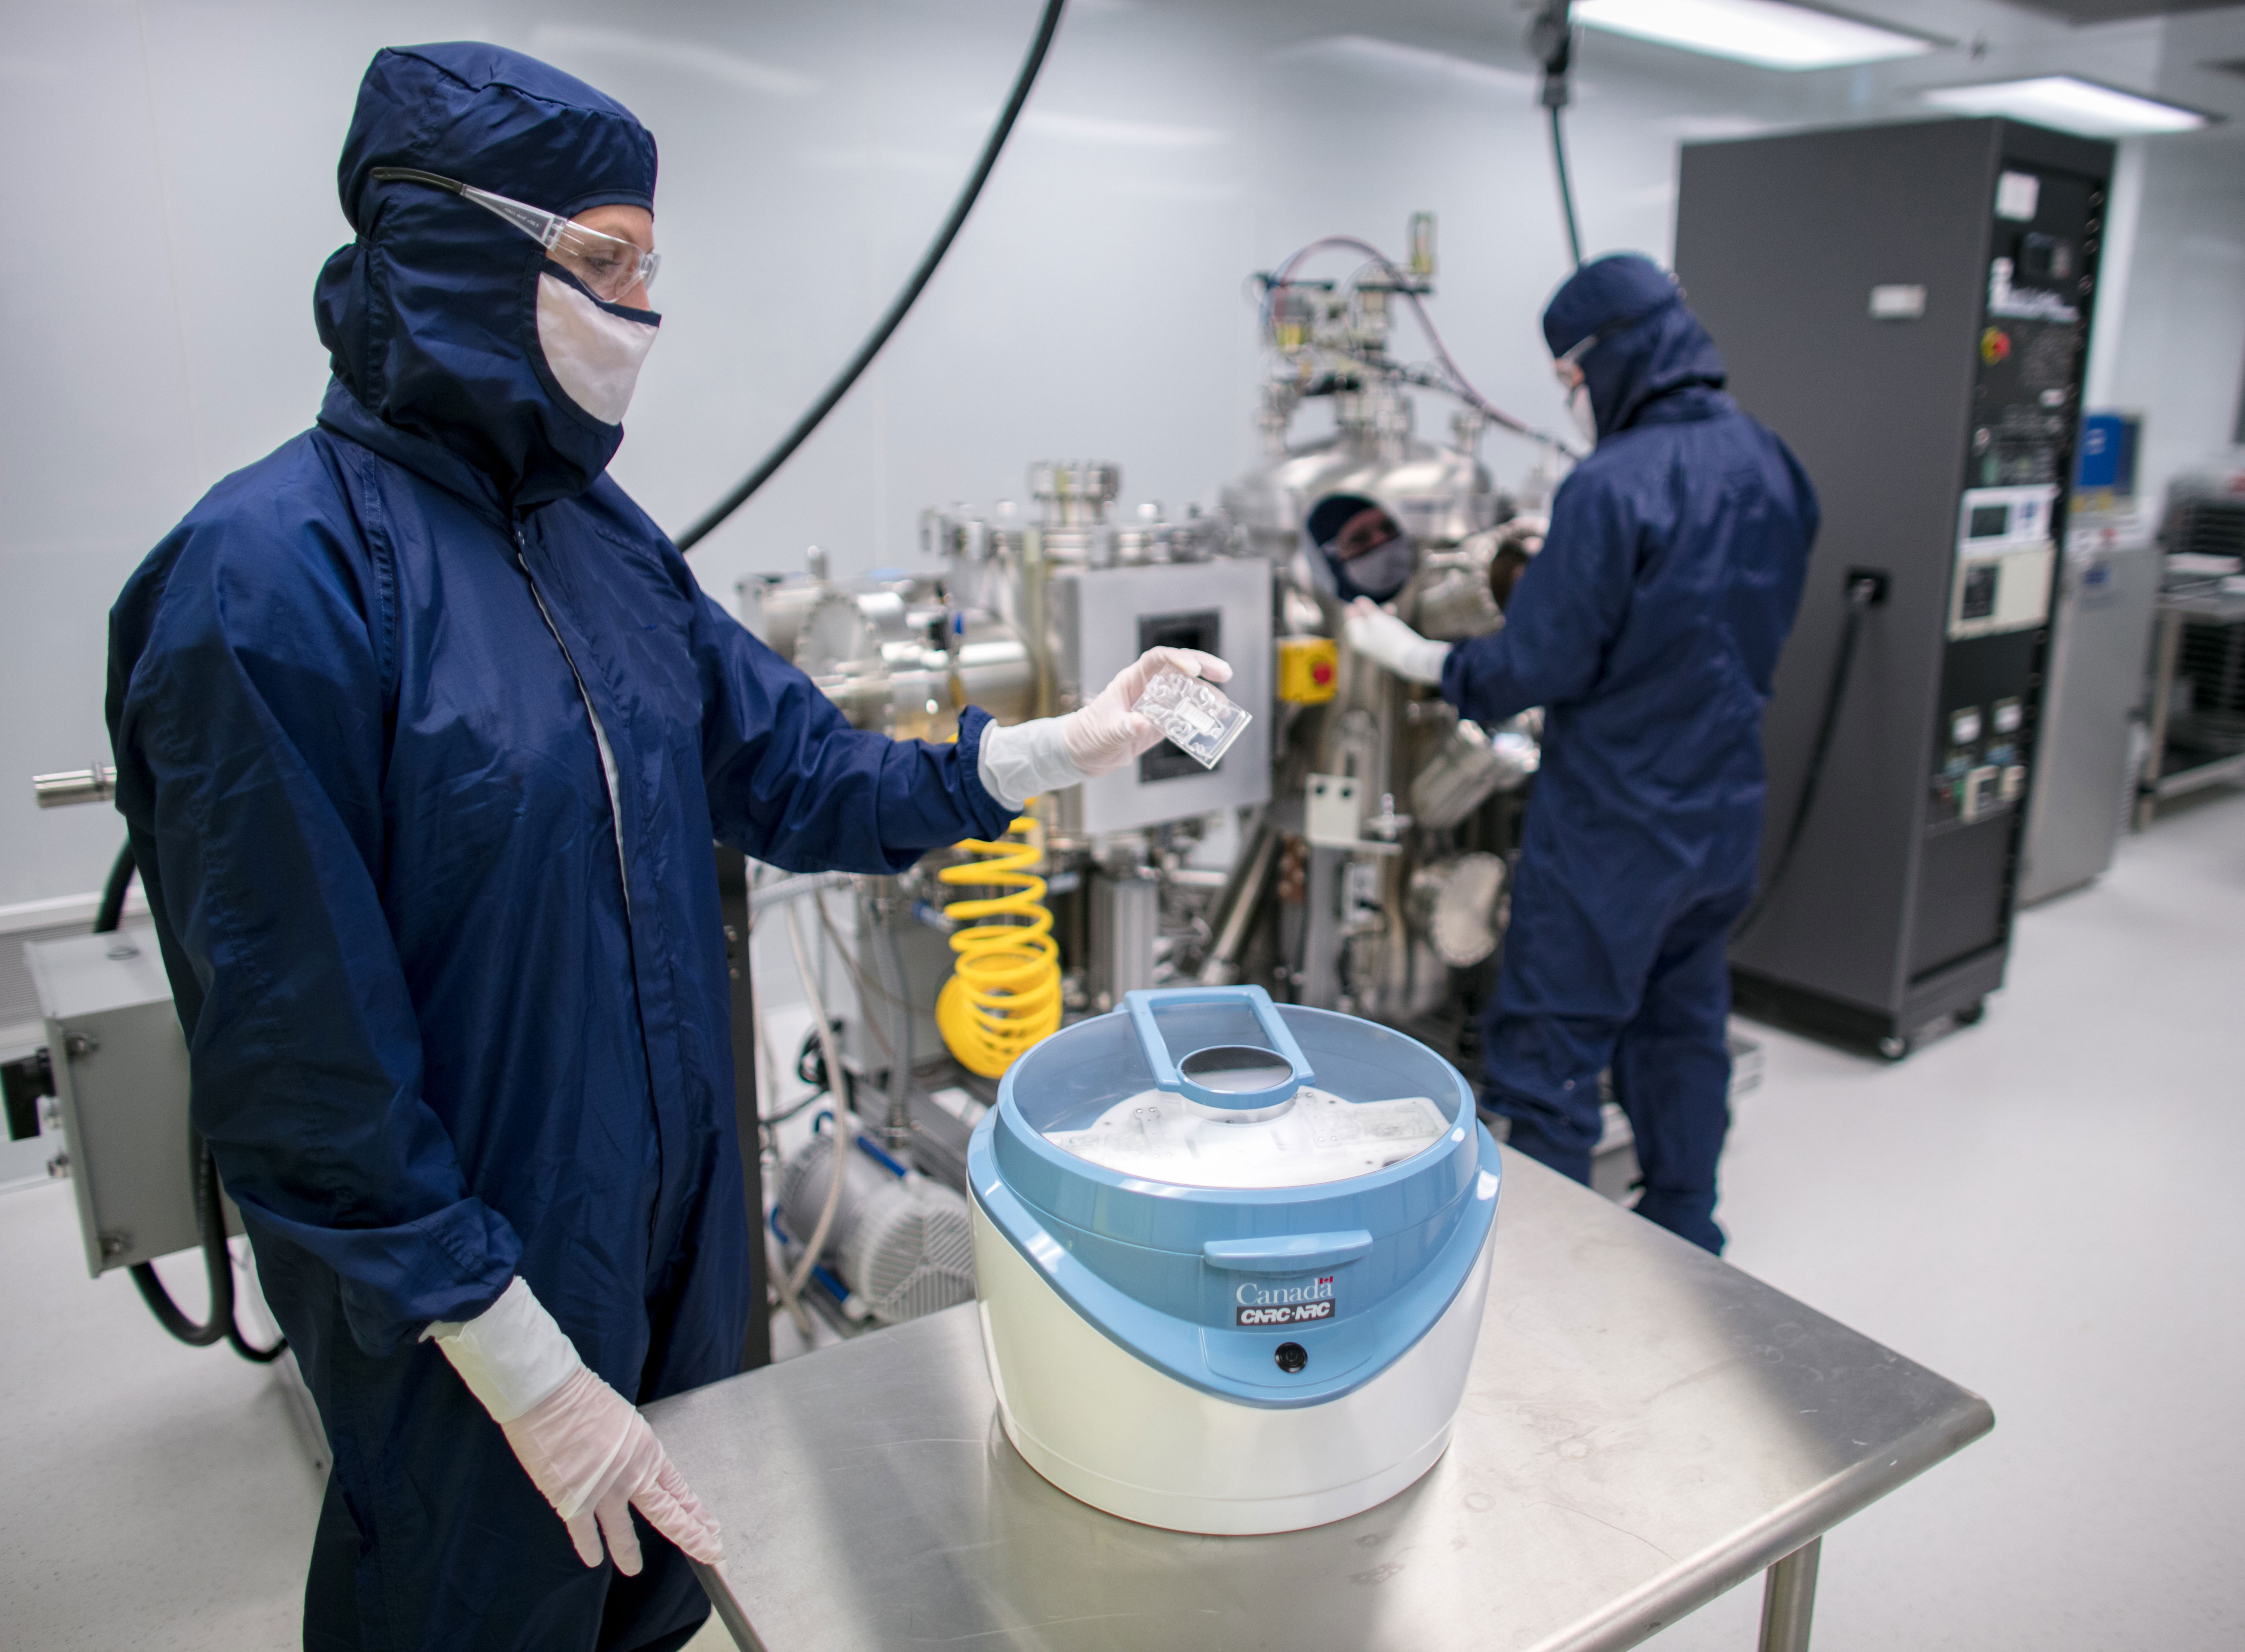 The NRC's bioanalytical device fabrication facility